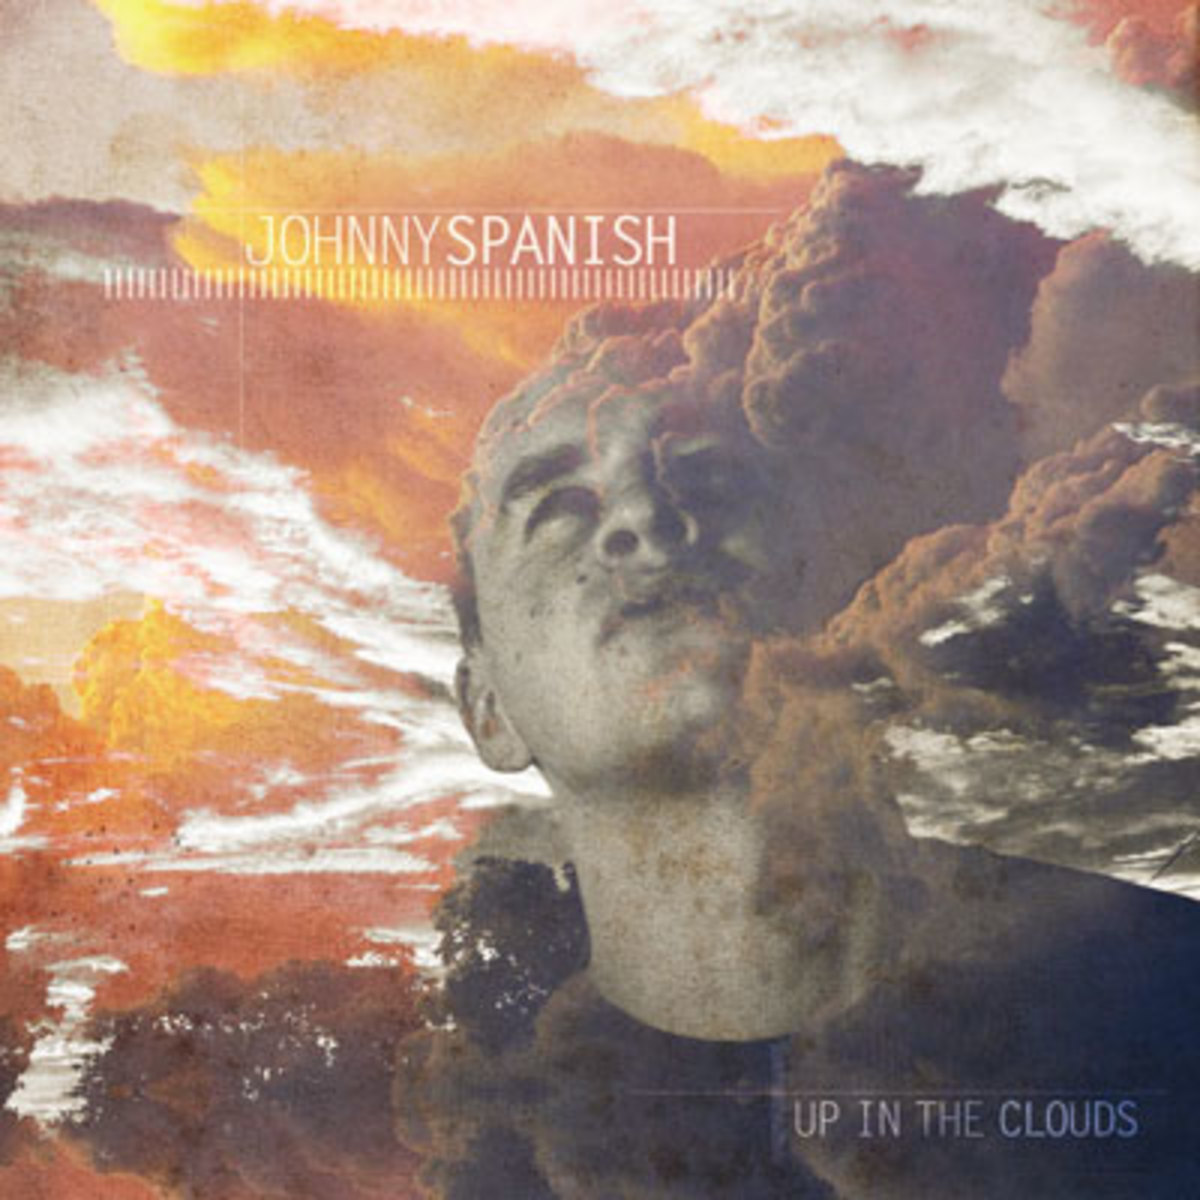 johnnyspanish-upintheclouds.jpg